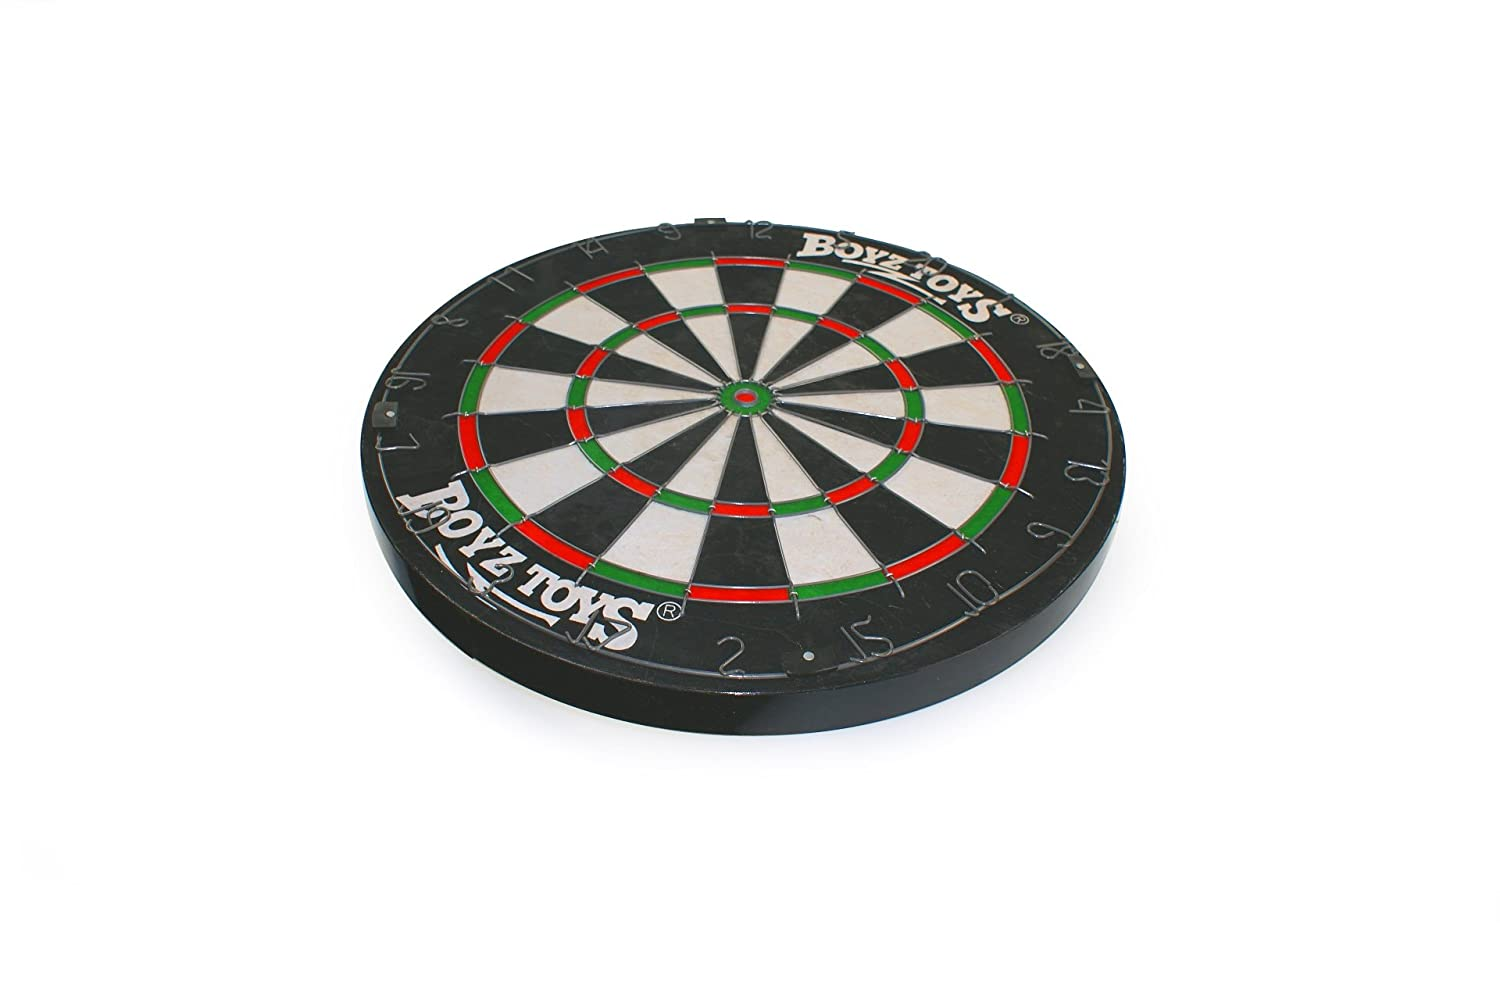 Tournament bristle dartboard salmo tournament 050 018